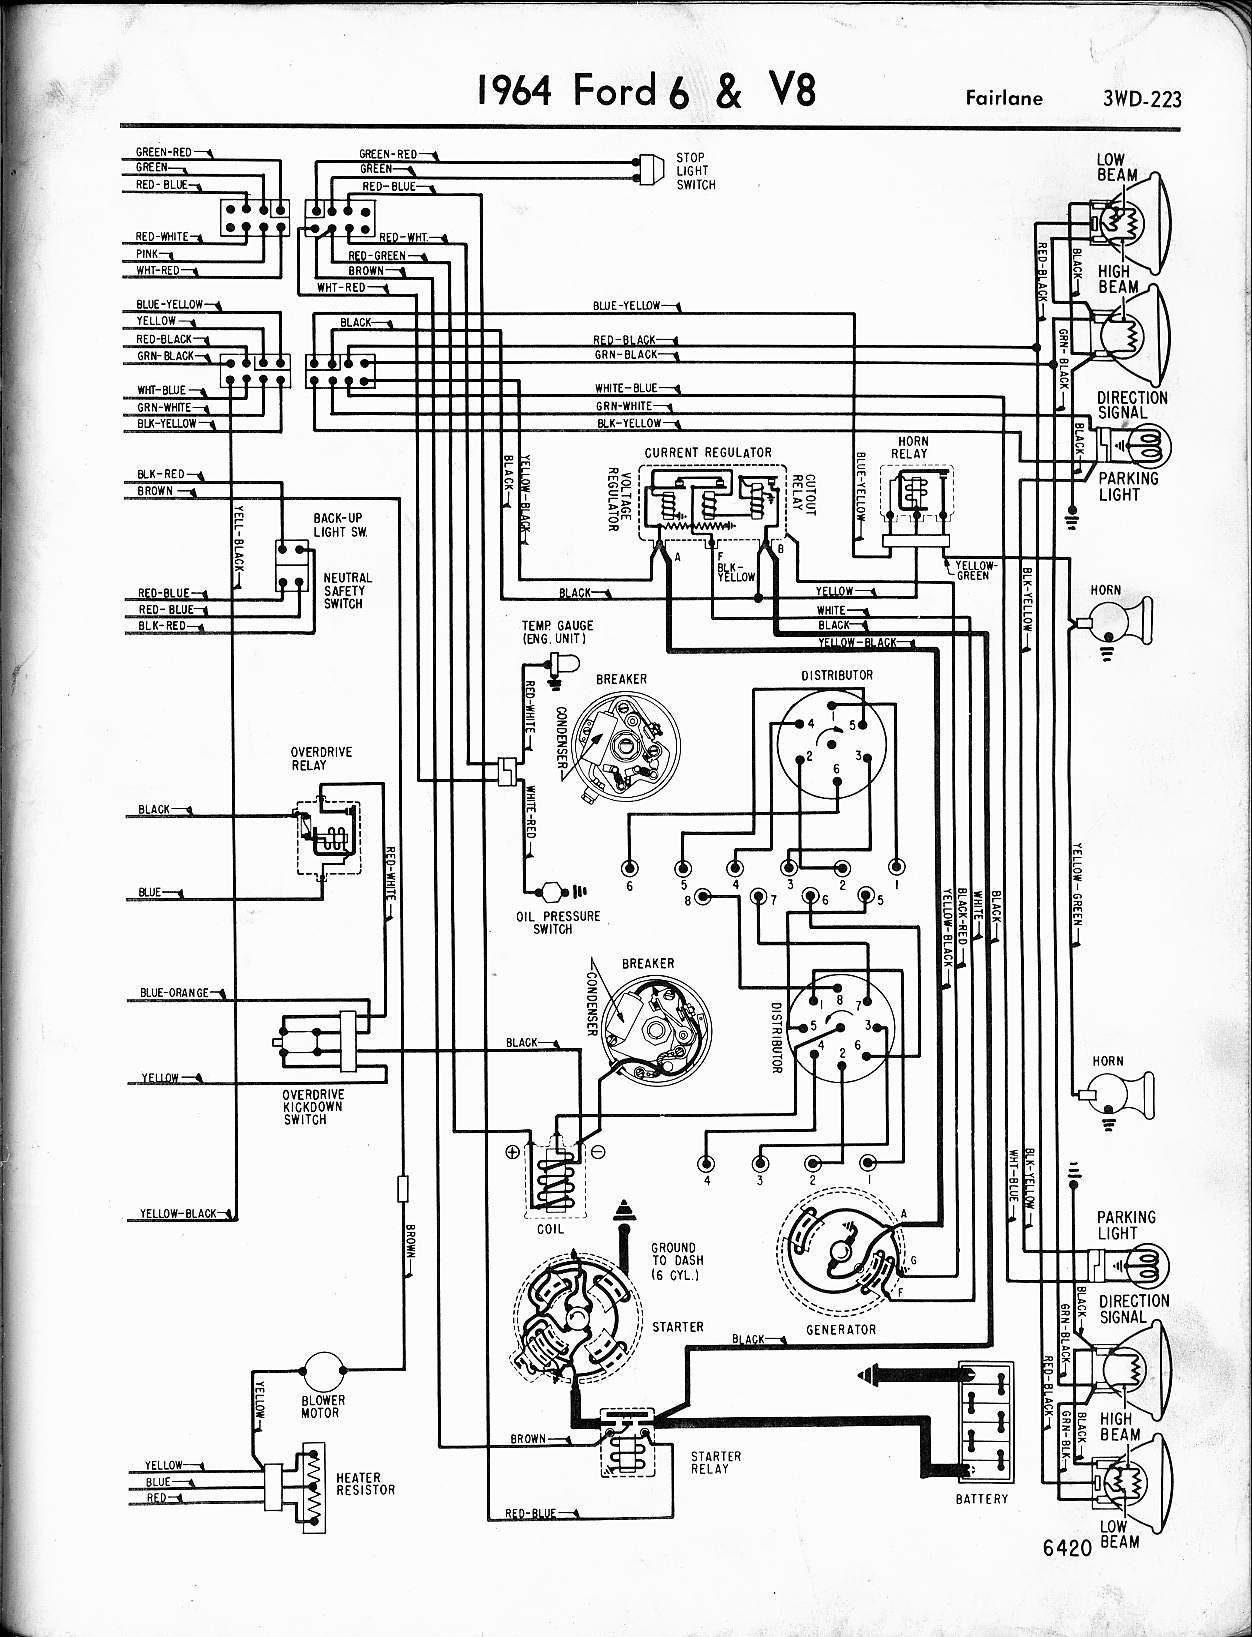 I need an Electrical Schematic for a 1964 Ford Falcon